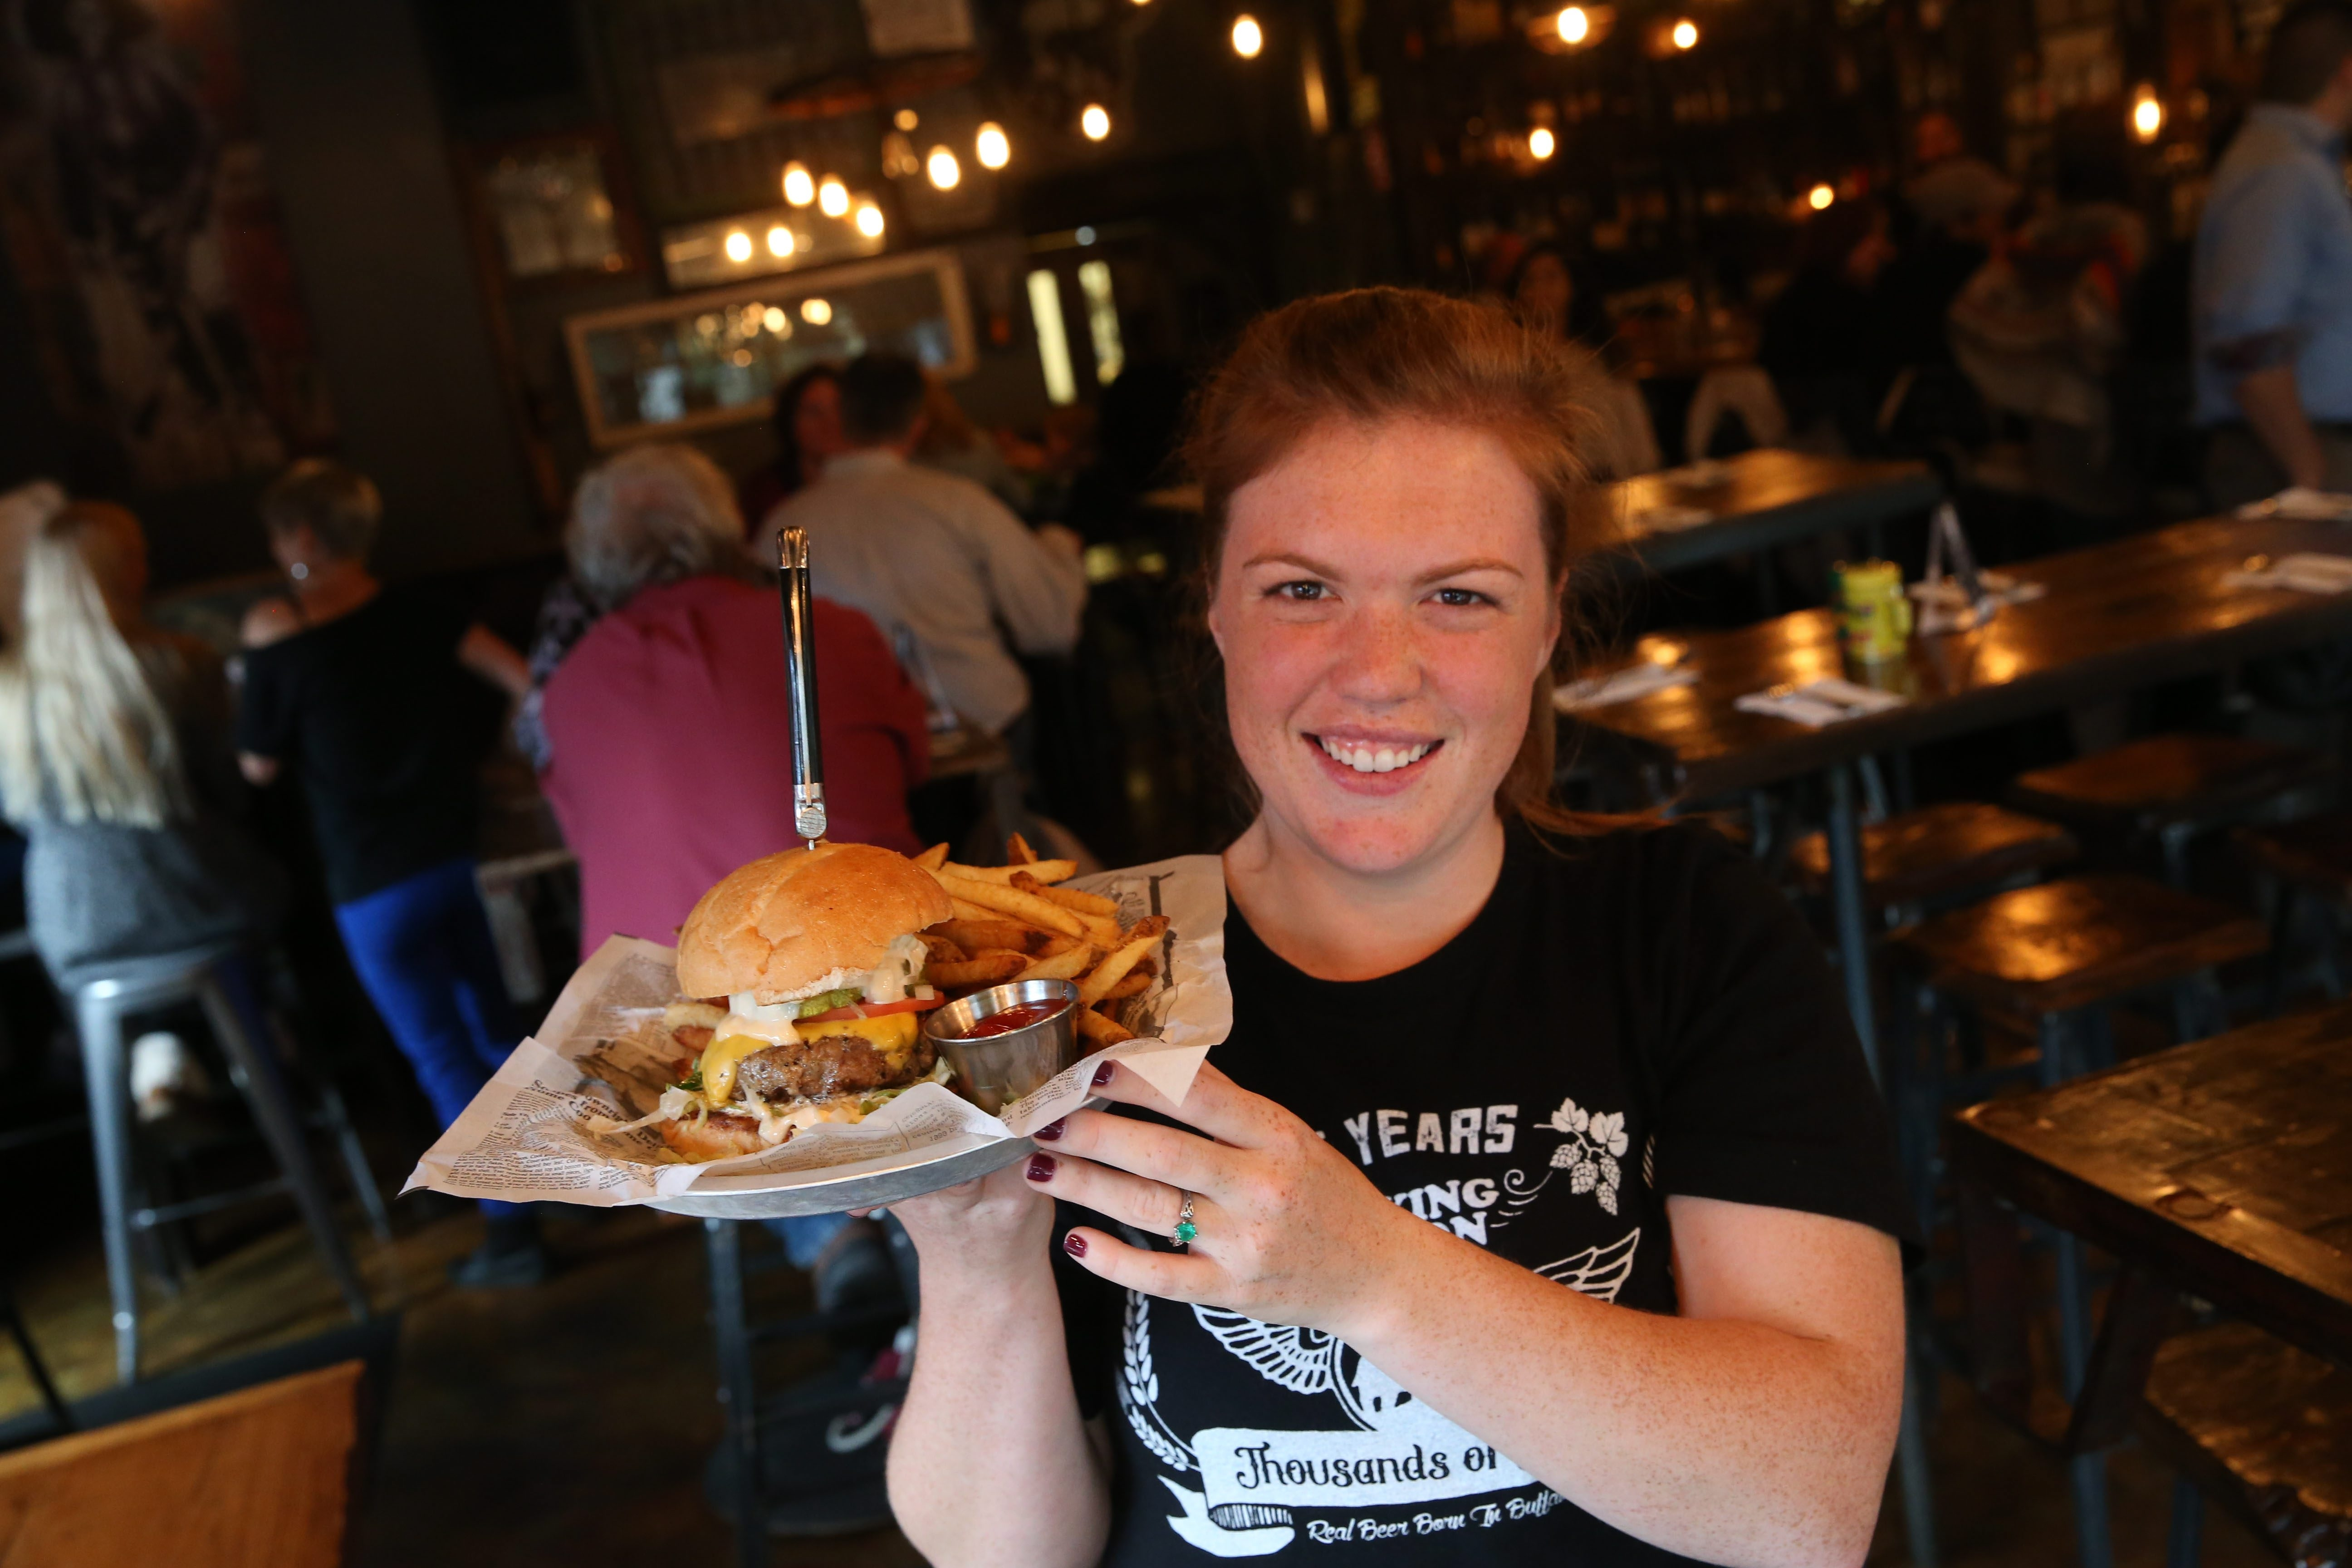 Allen Burger Venture at 175 Allen St. is one of Andrew Galarneau's favorite new restaurants in 2015. Server Sarah Francis presents the All-American burger.  (Sharon Cantillon/Buffalo News)